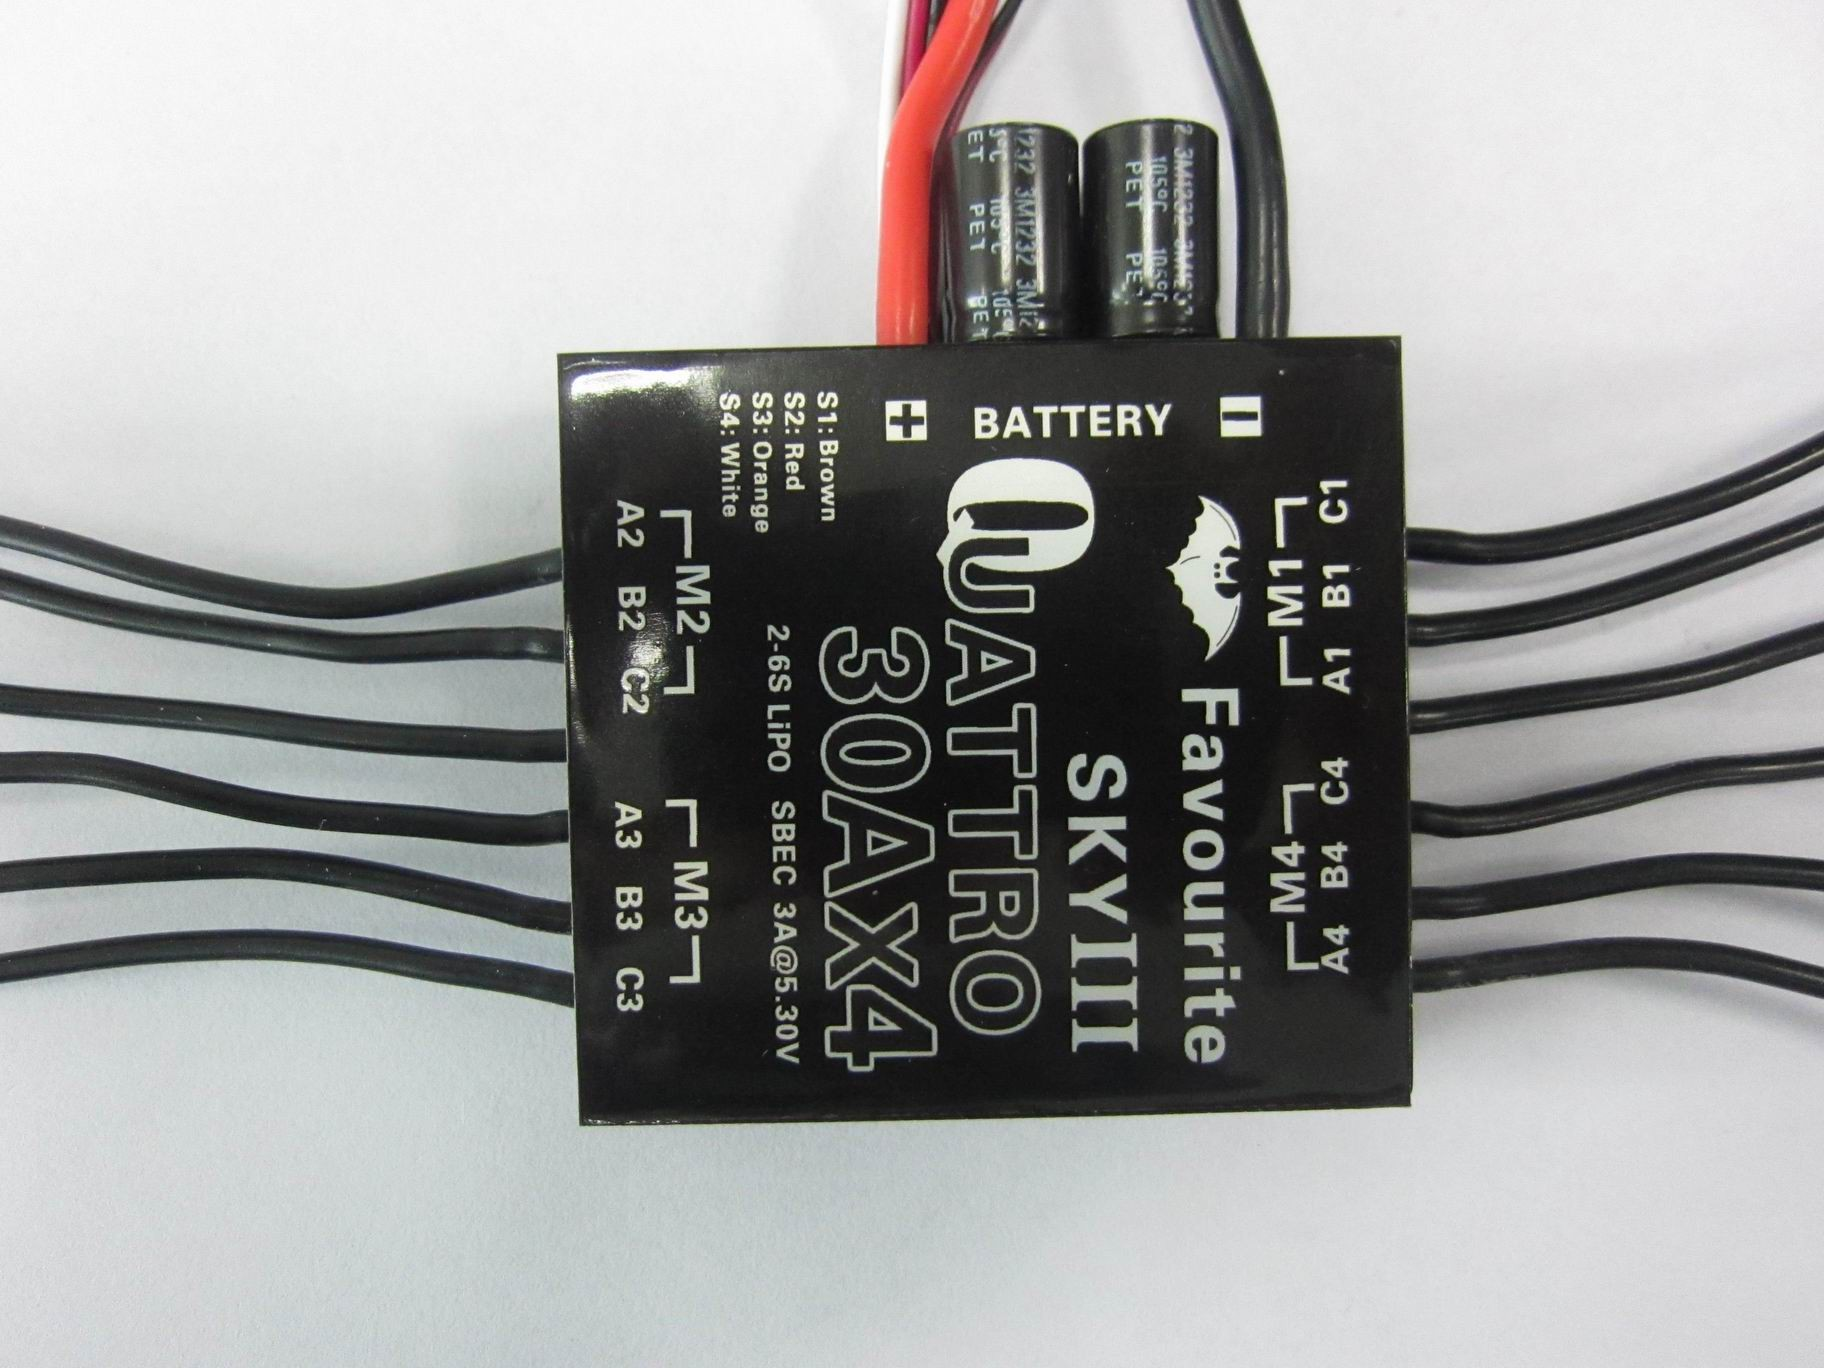 4-in-1 Multirotor ESC 30A x 4 2S-6S